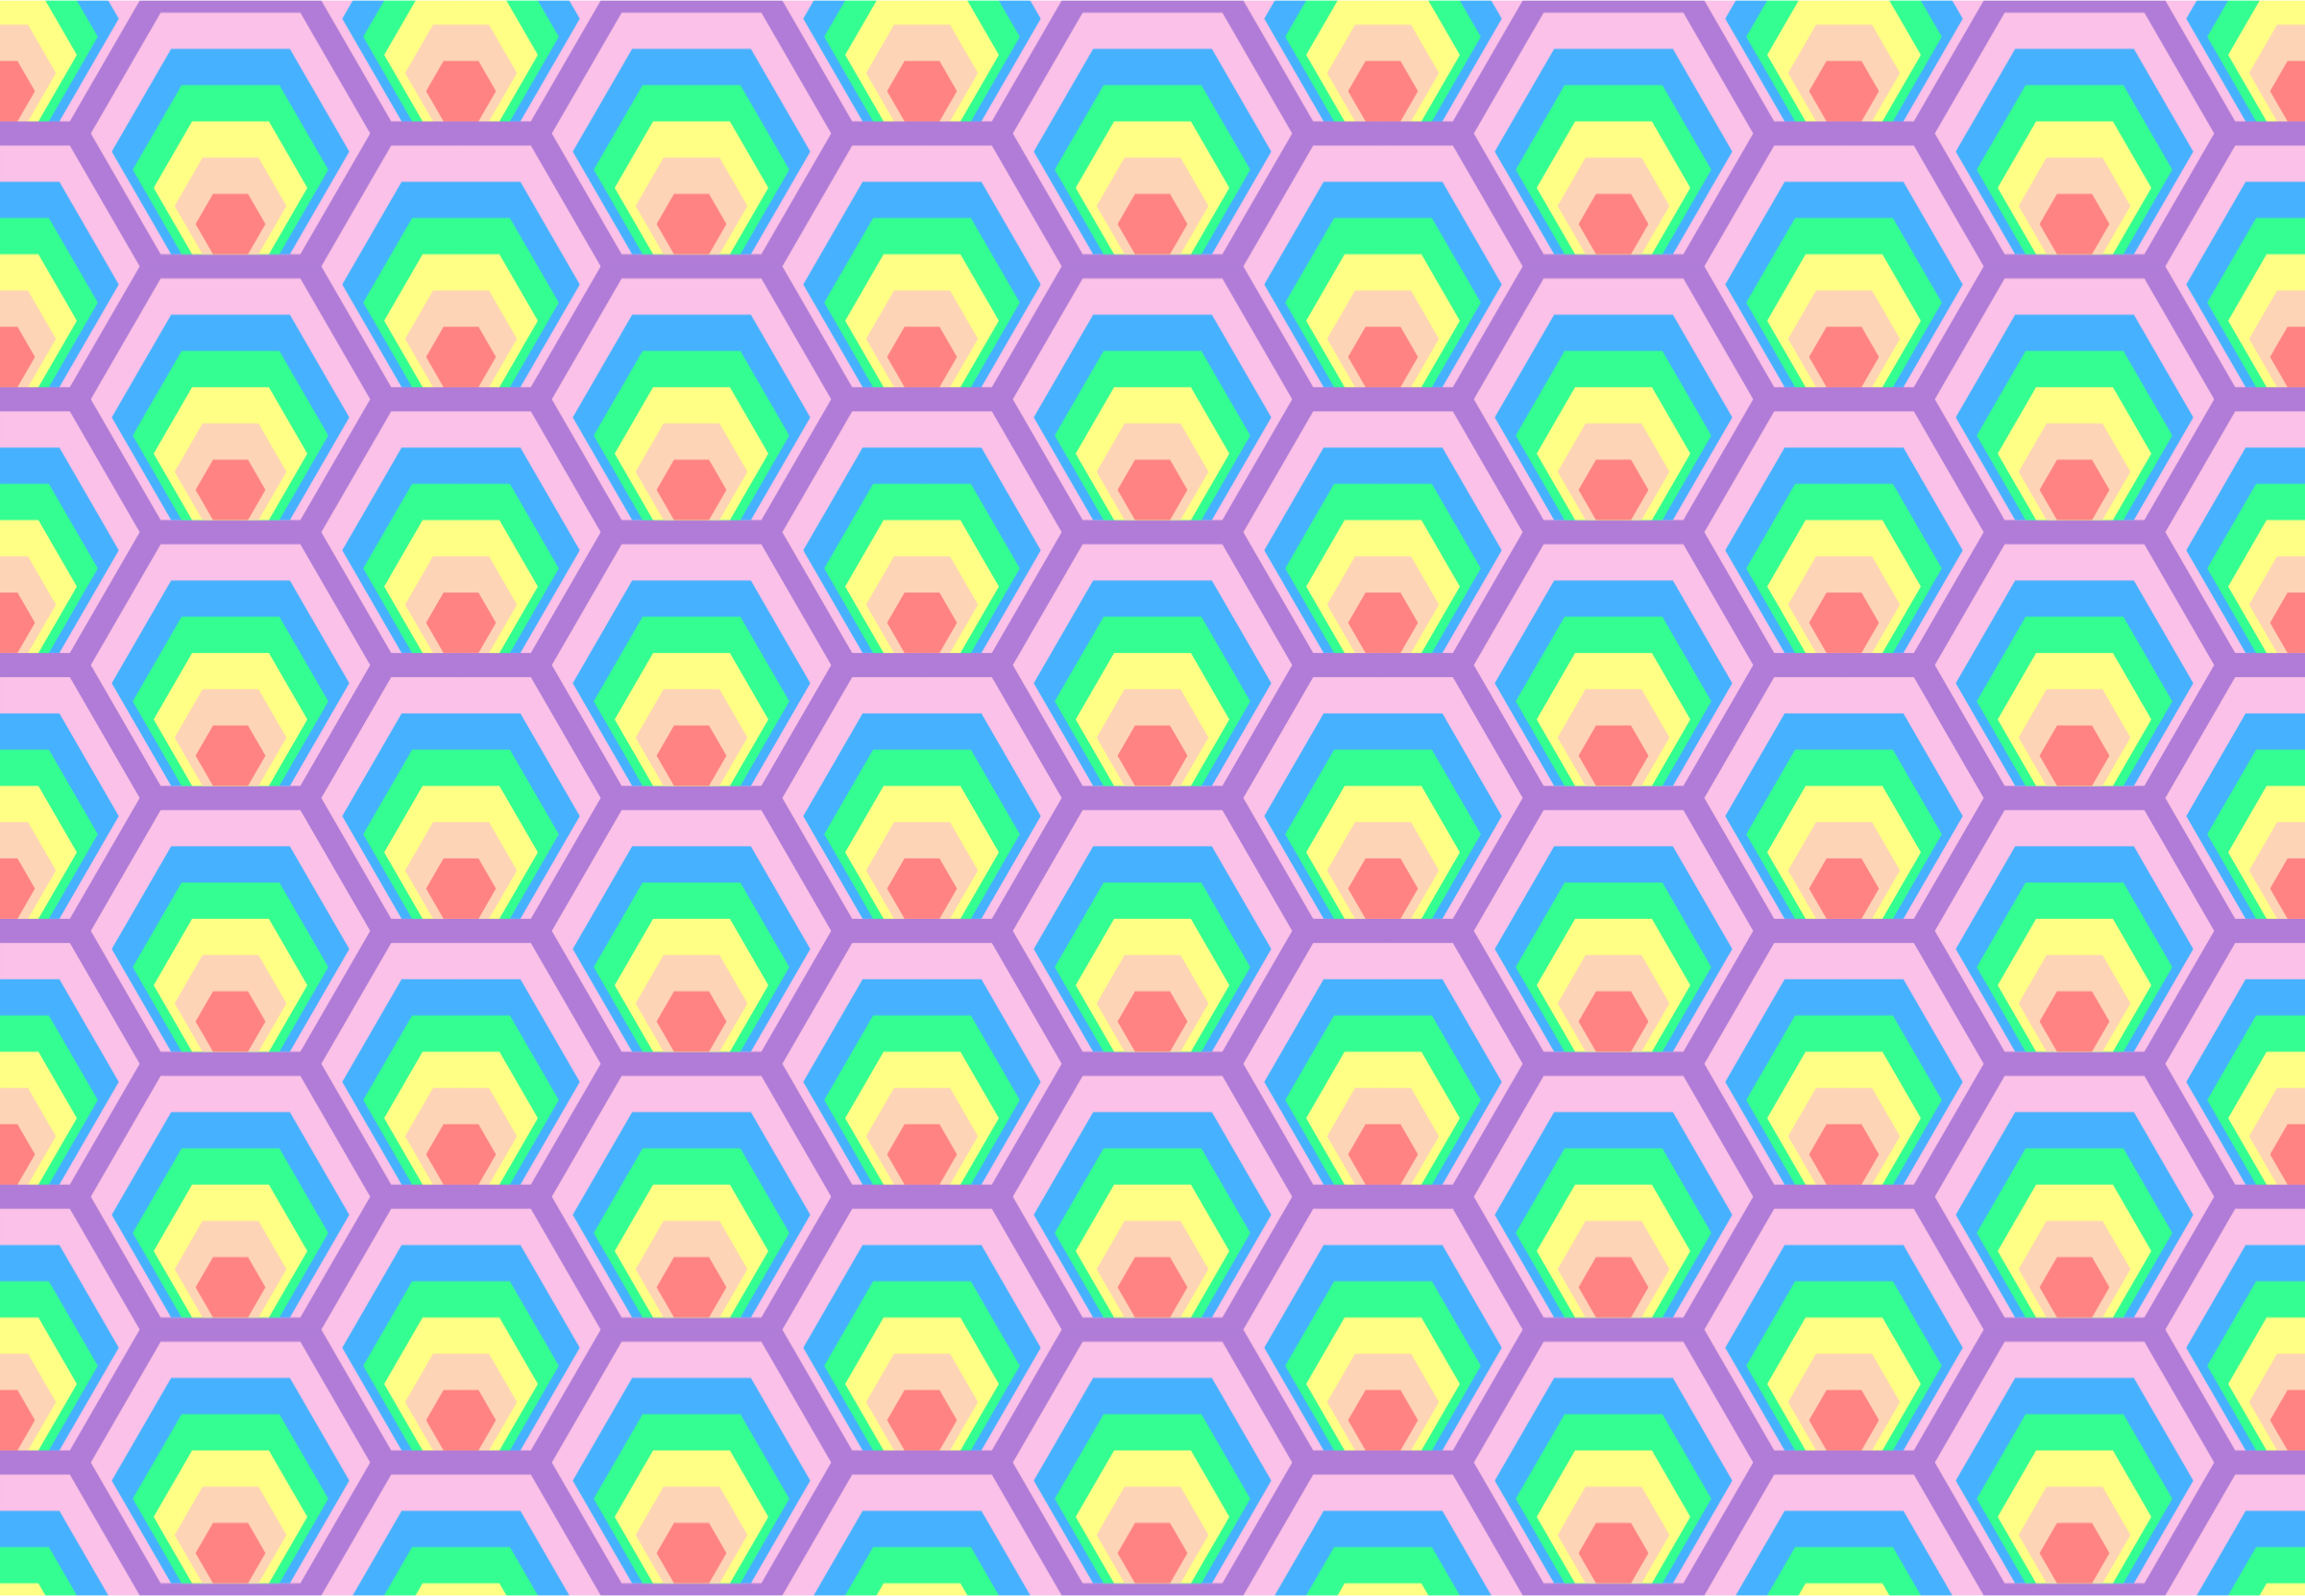 Colourful hexagon pattern (colour 2) by Firkin